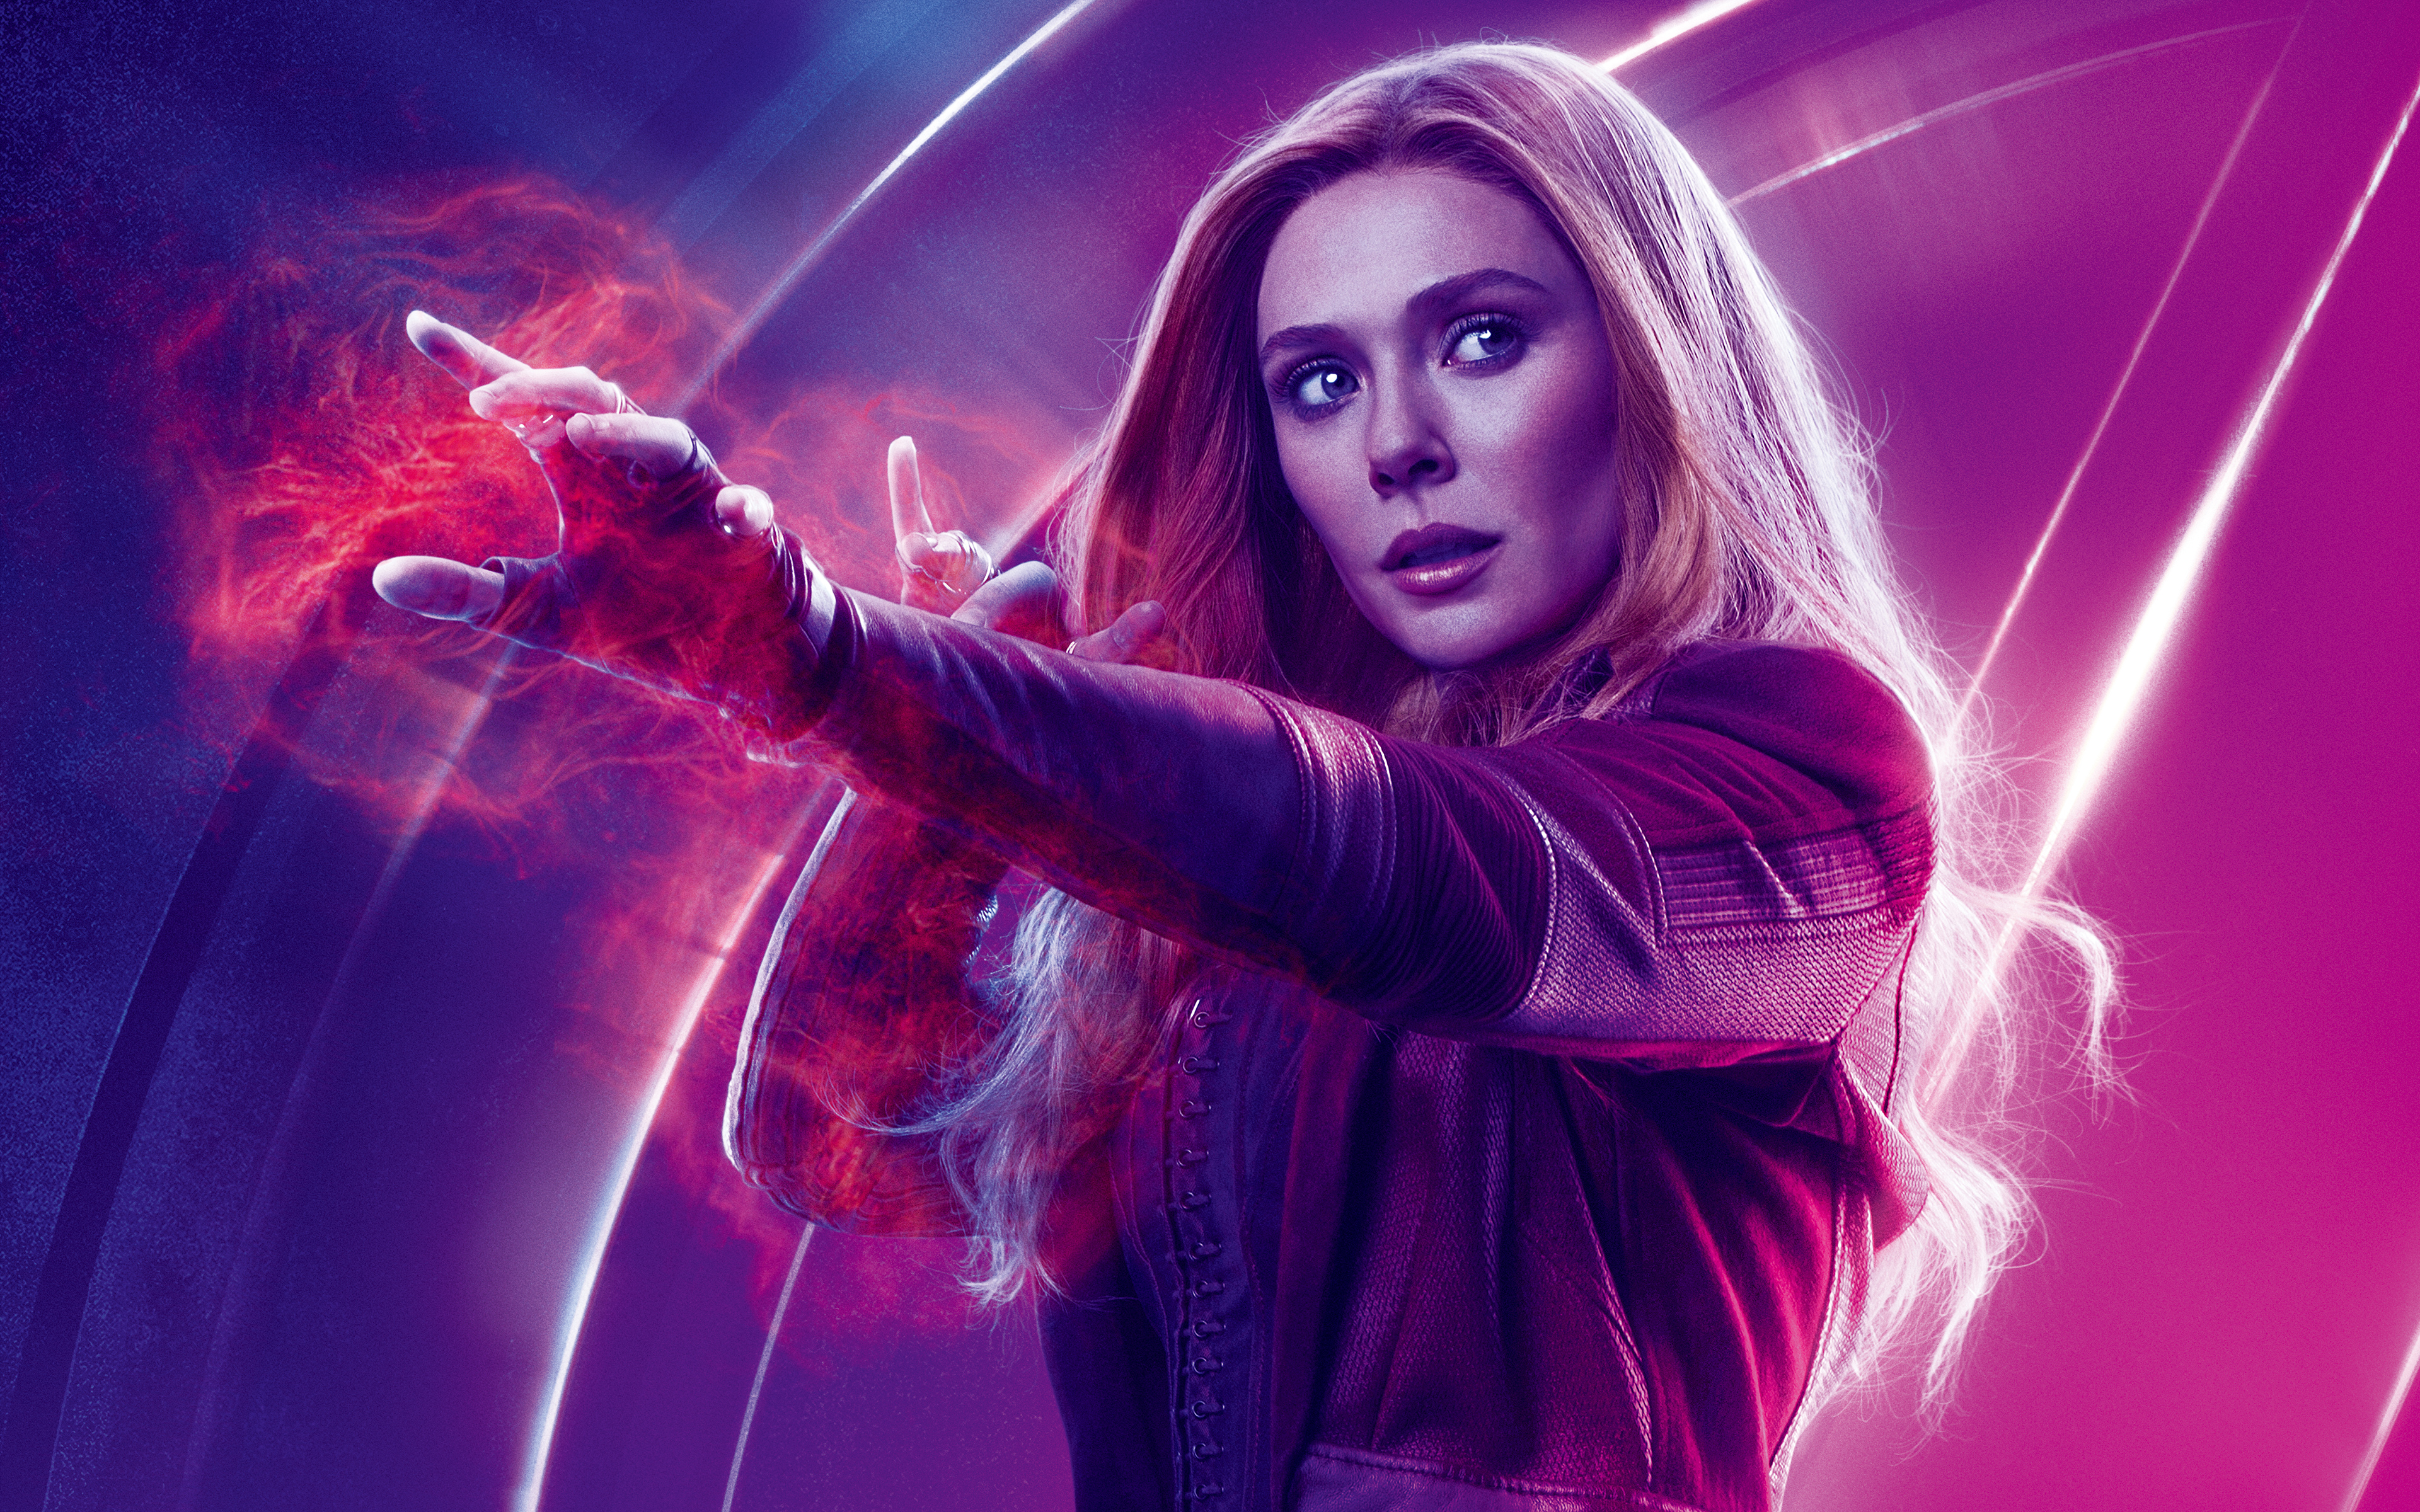 Elizabeth Olsen As Scarlet Witch Avengers Infinity War 4K 8K Wallpapers